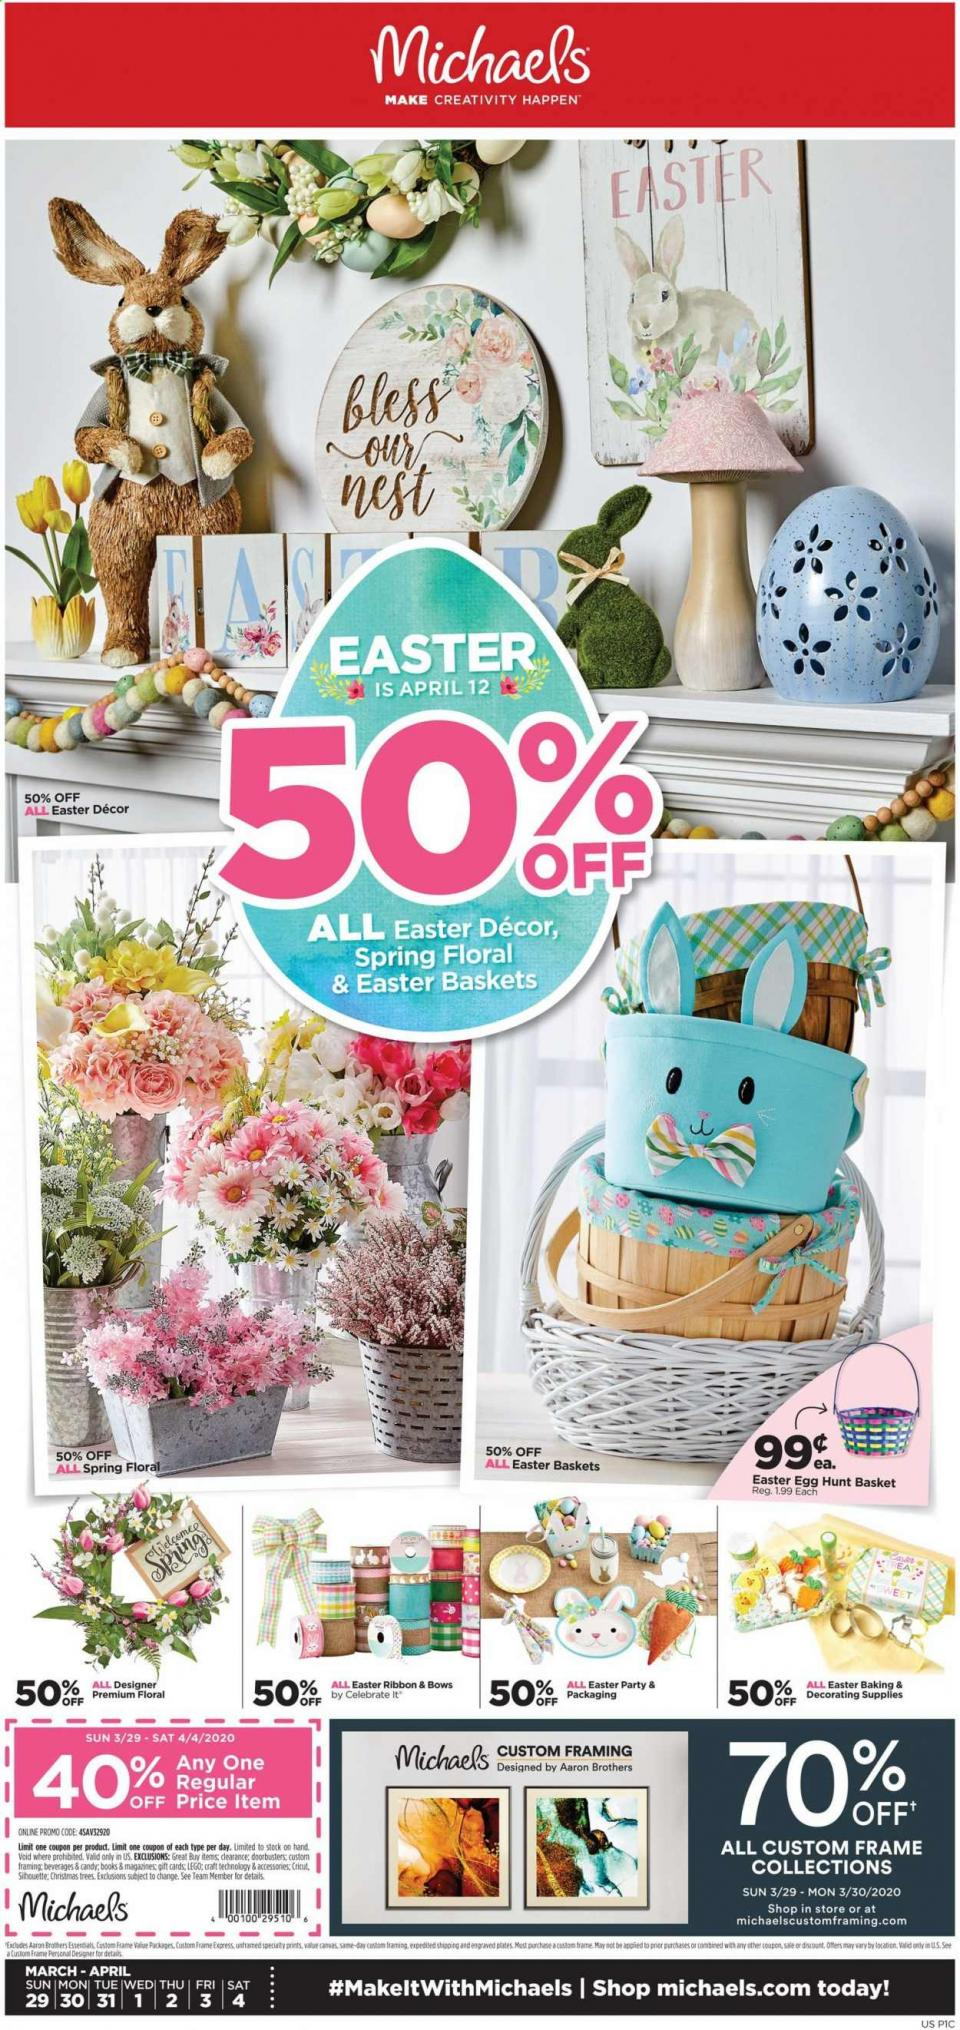 michaels easter weekly ad valid from mar 29 apr 4 2020